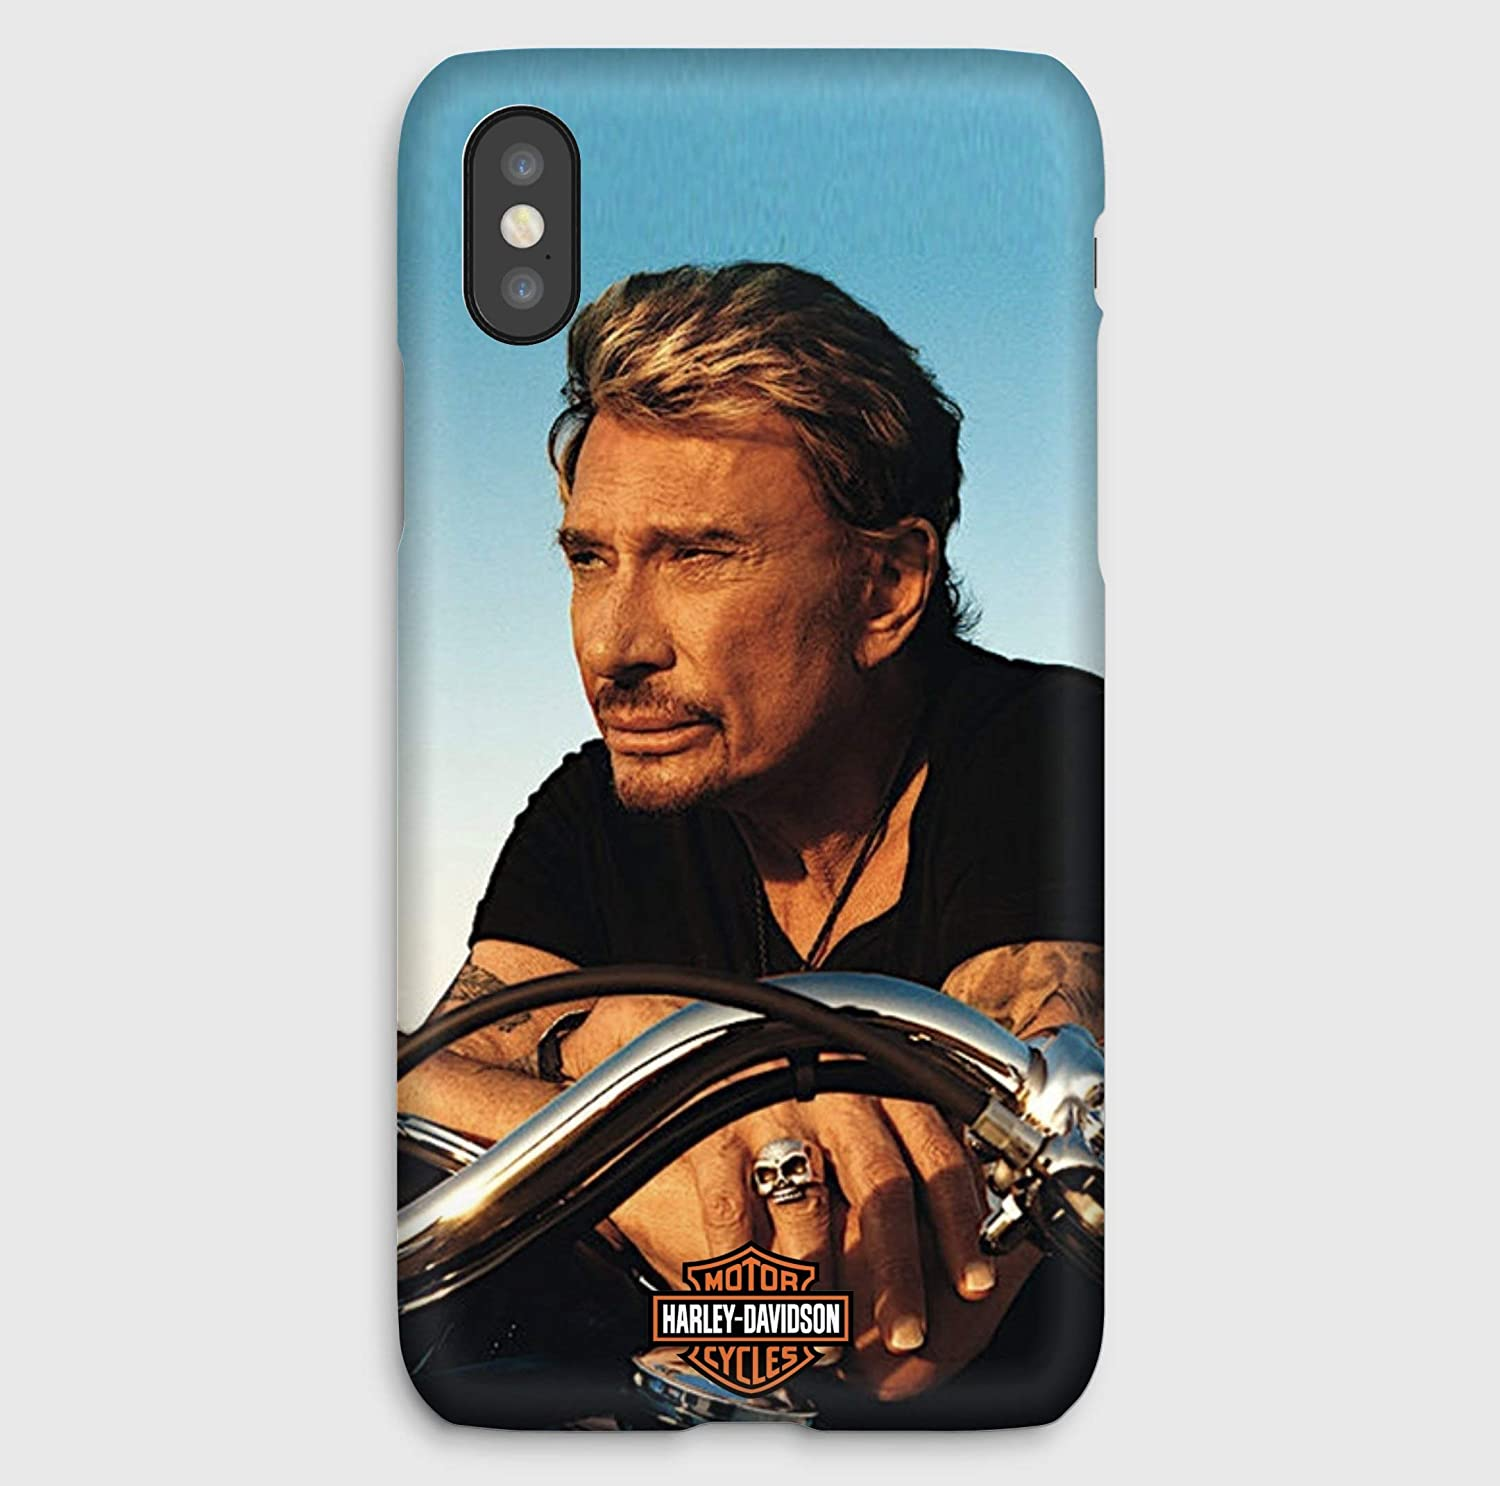 Johnny Hallyday en Harley, coque pour iPhone XS, XS Max, XR, X, 8, 8+, 7, 7+, 6S, 6, 6S+, 6+, 5C, 5, 5S, 5SE, 4S, 4,